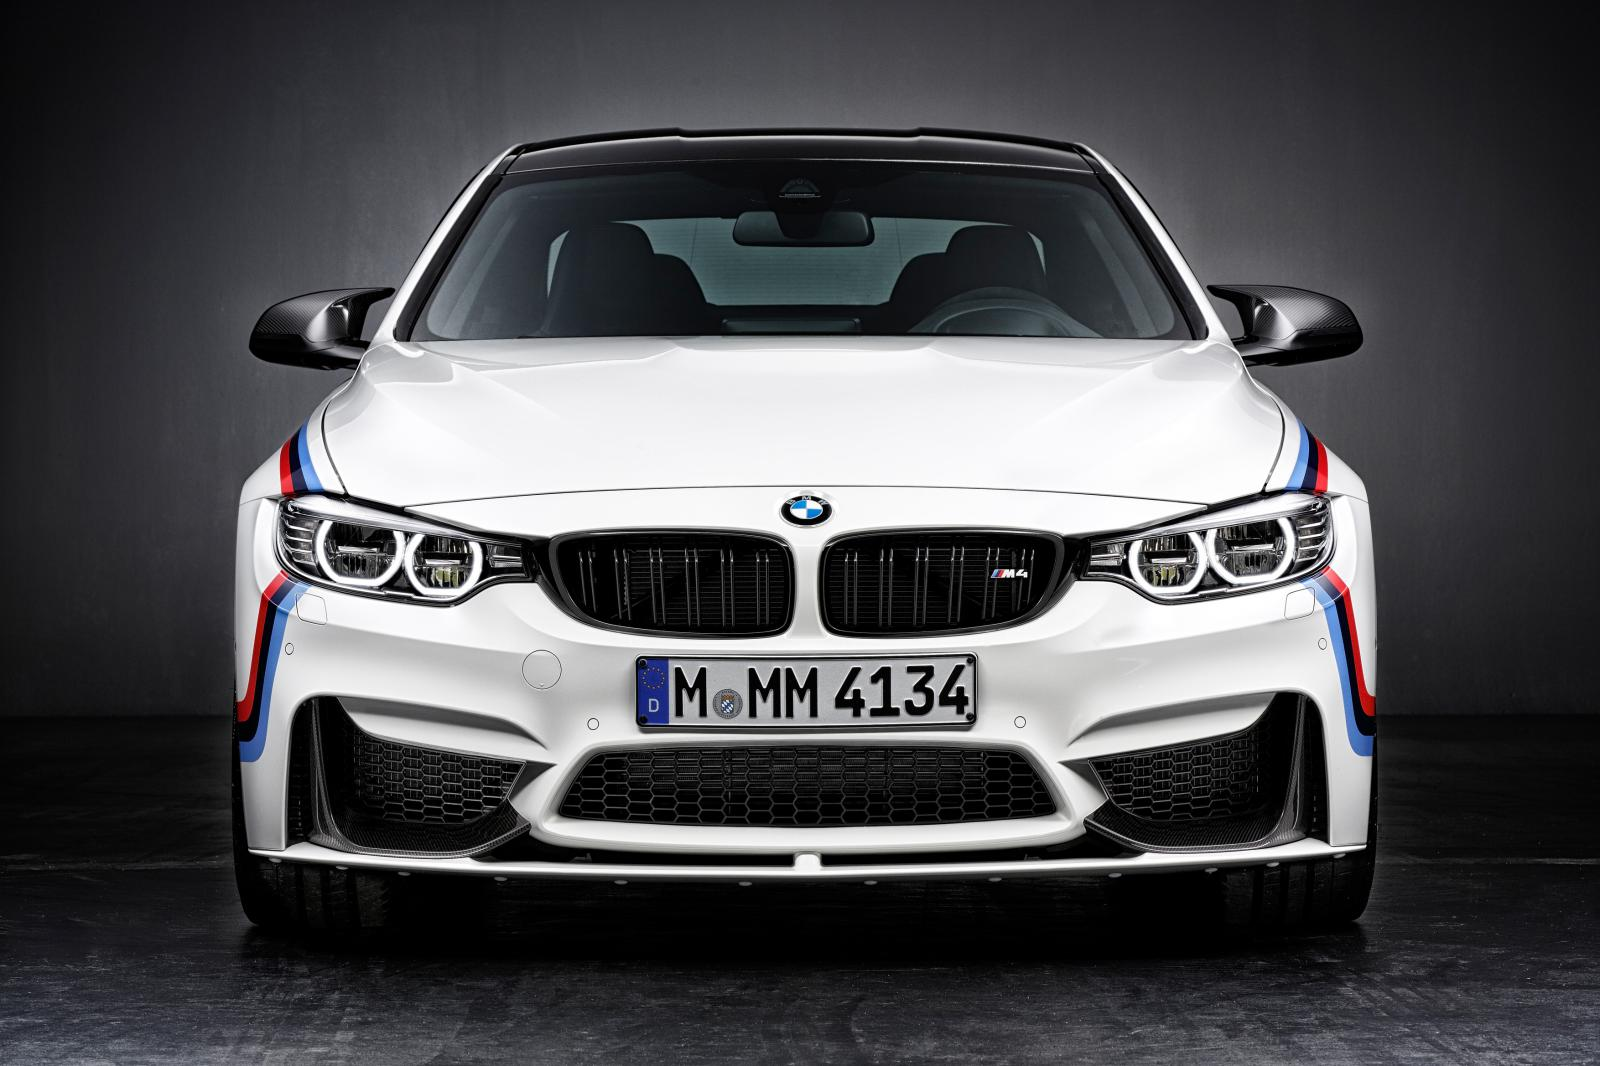 Royal Royce Car Hd Wallpaper 2015 Bmw M4 With M Performance Accessories Front